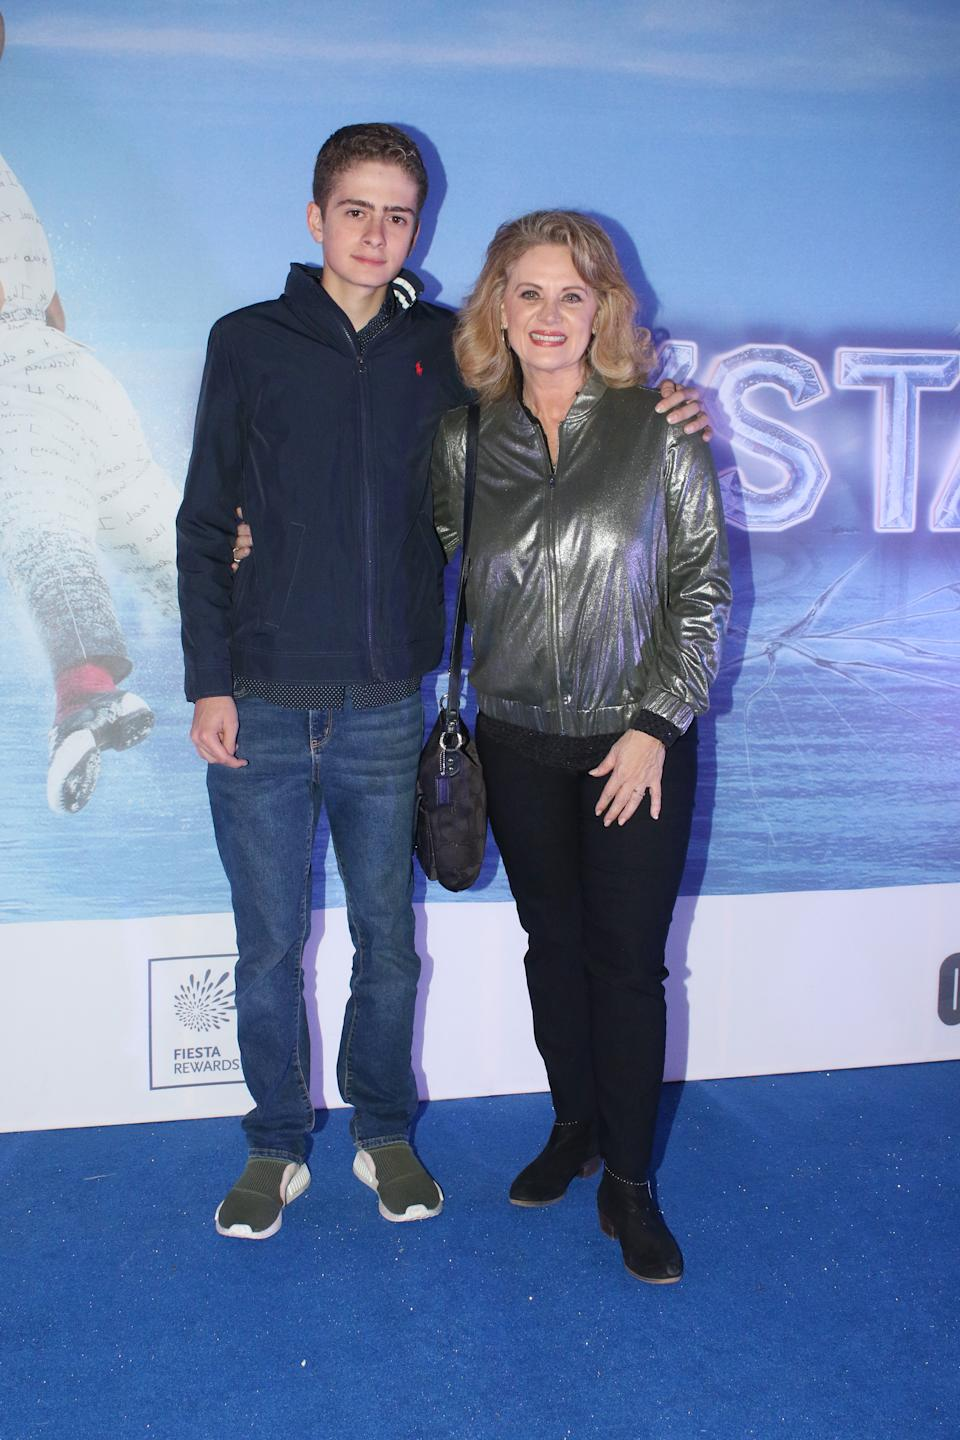 MEXICO CITY, MEXICO - OCTOBER 04: Nicolas Buenfil and Erika Buenfil pose for photos at the red carpet before the Cirque Du Soleil show 'CRYSTAL' at Palacio de Los Deportes on October 4, 2019 in Mexico City, Mexico.  (Photo by Adrián Monroy/Medios y Media/Getty Images)